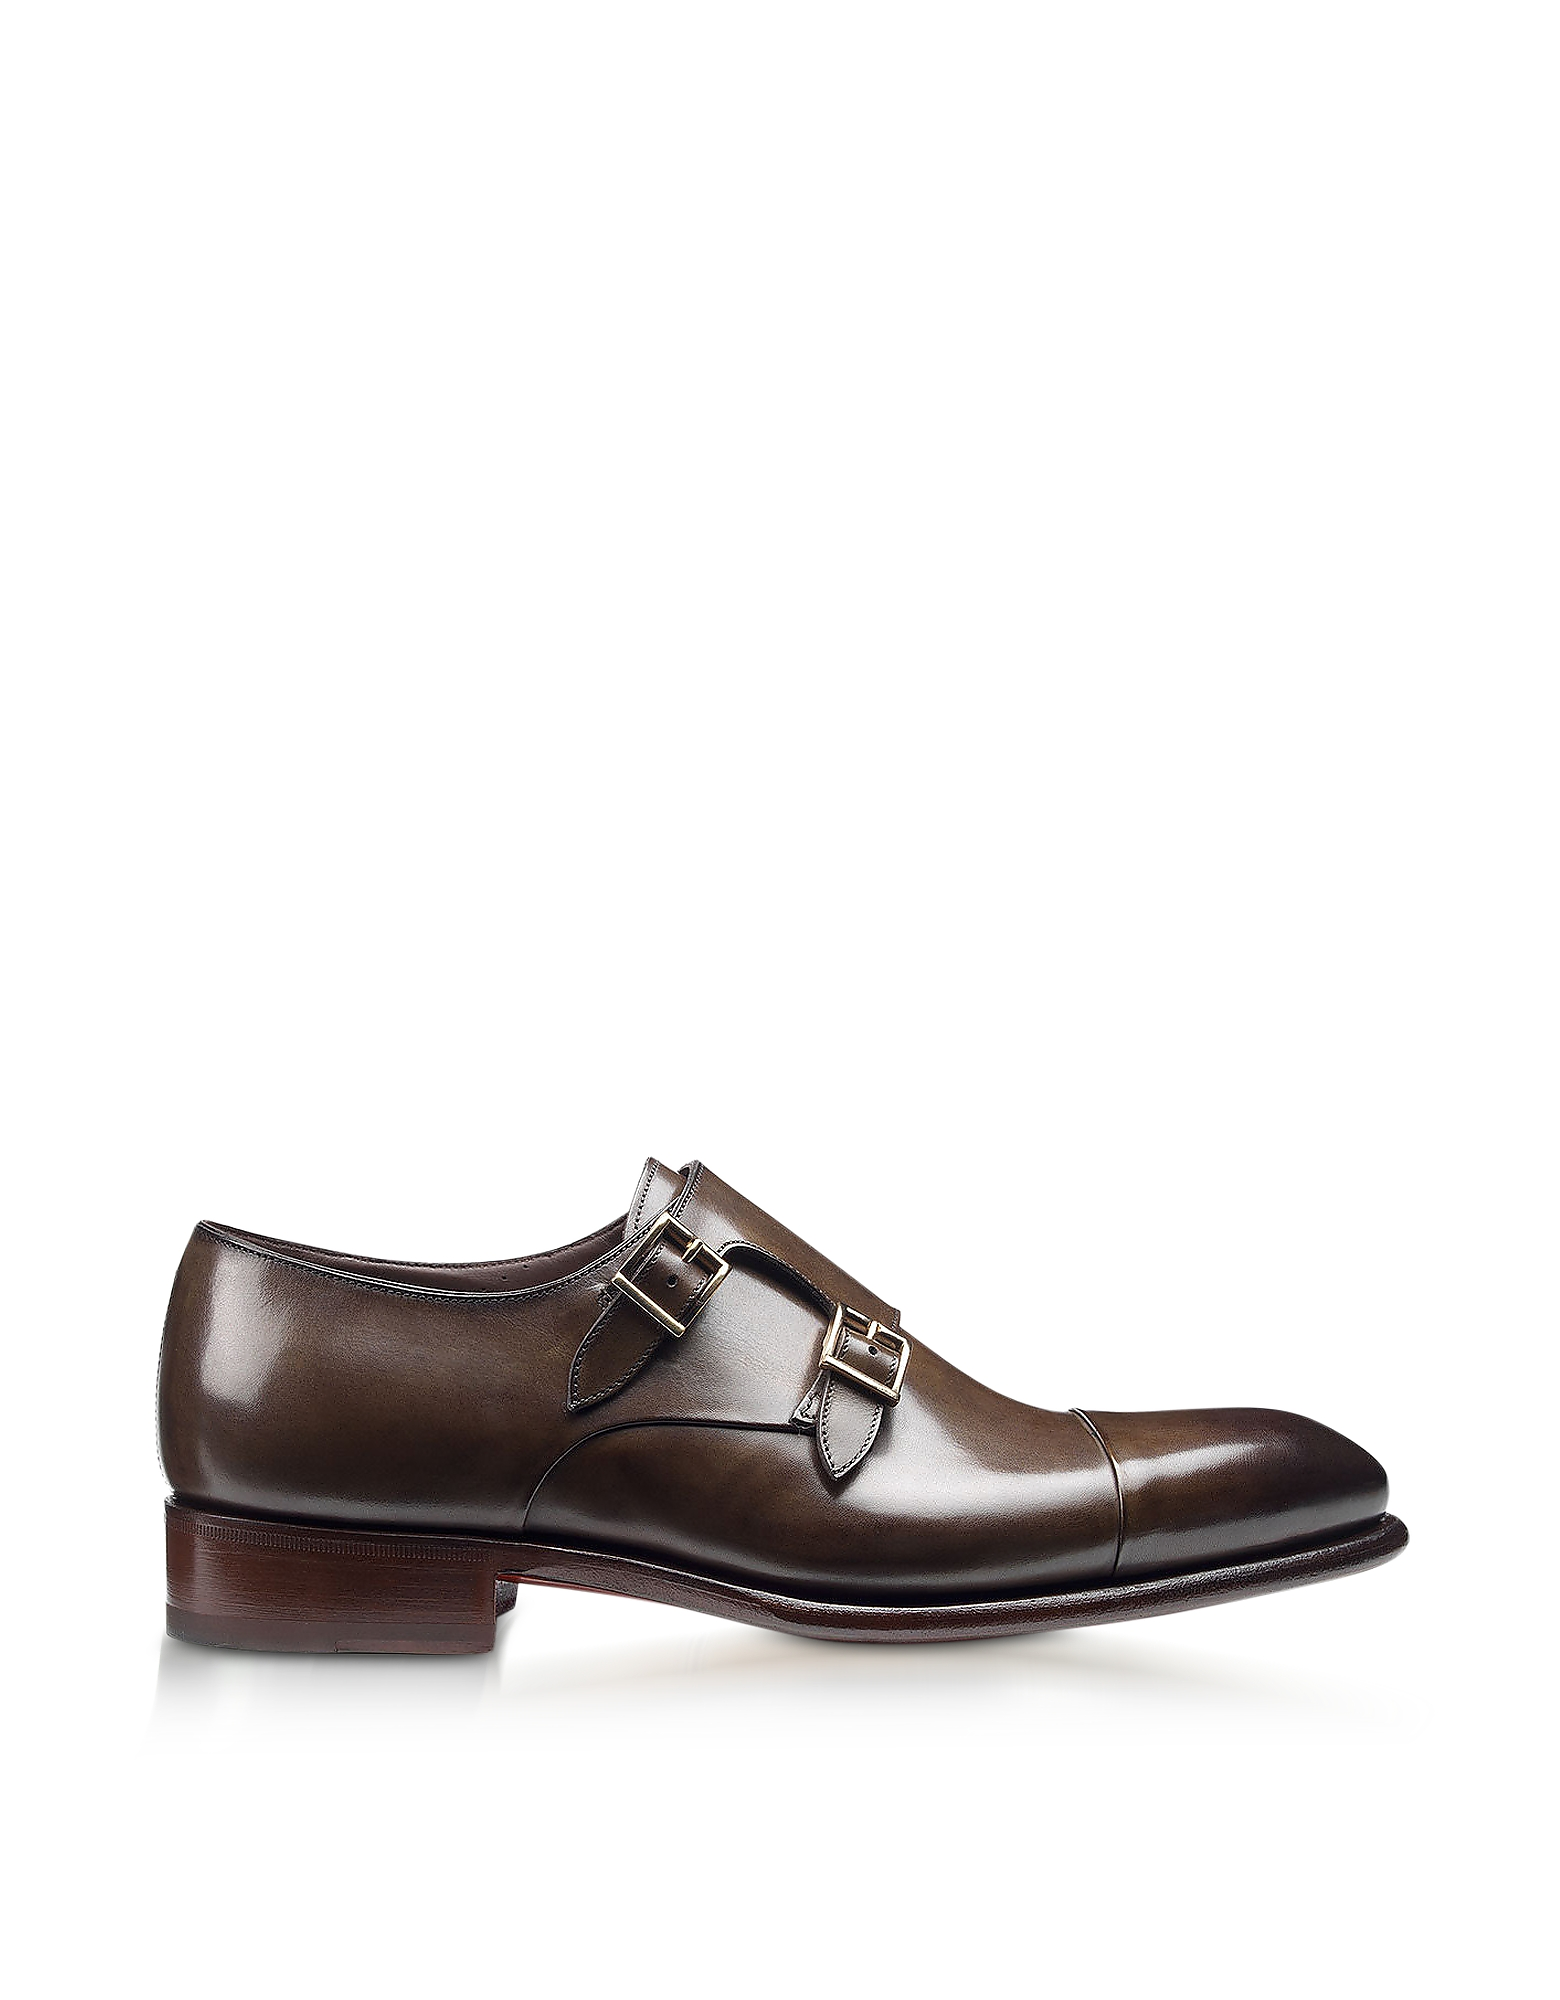 Wilson Dark Brown Leather Monk Strap Shoes